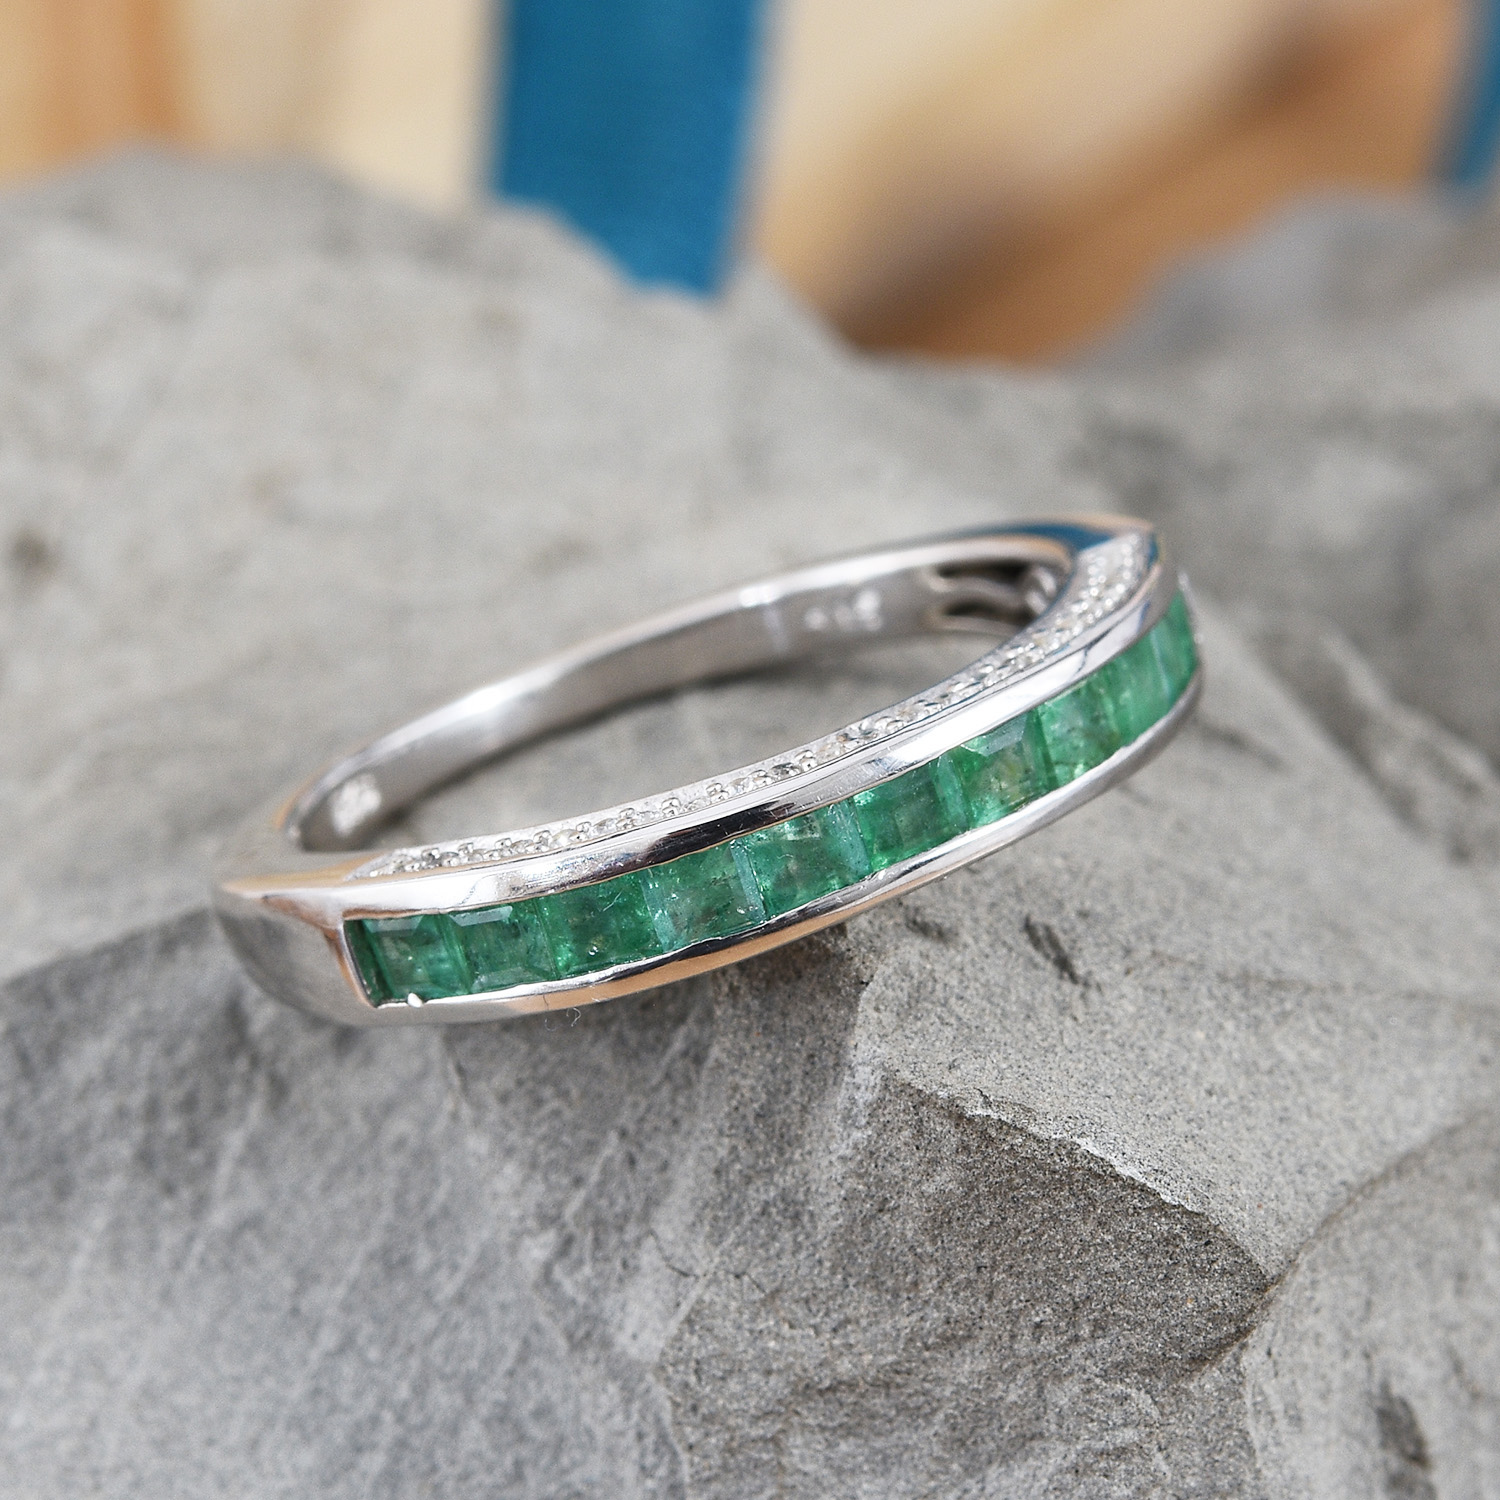 Emerald ring with channel set stones resting on slate.